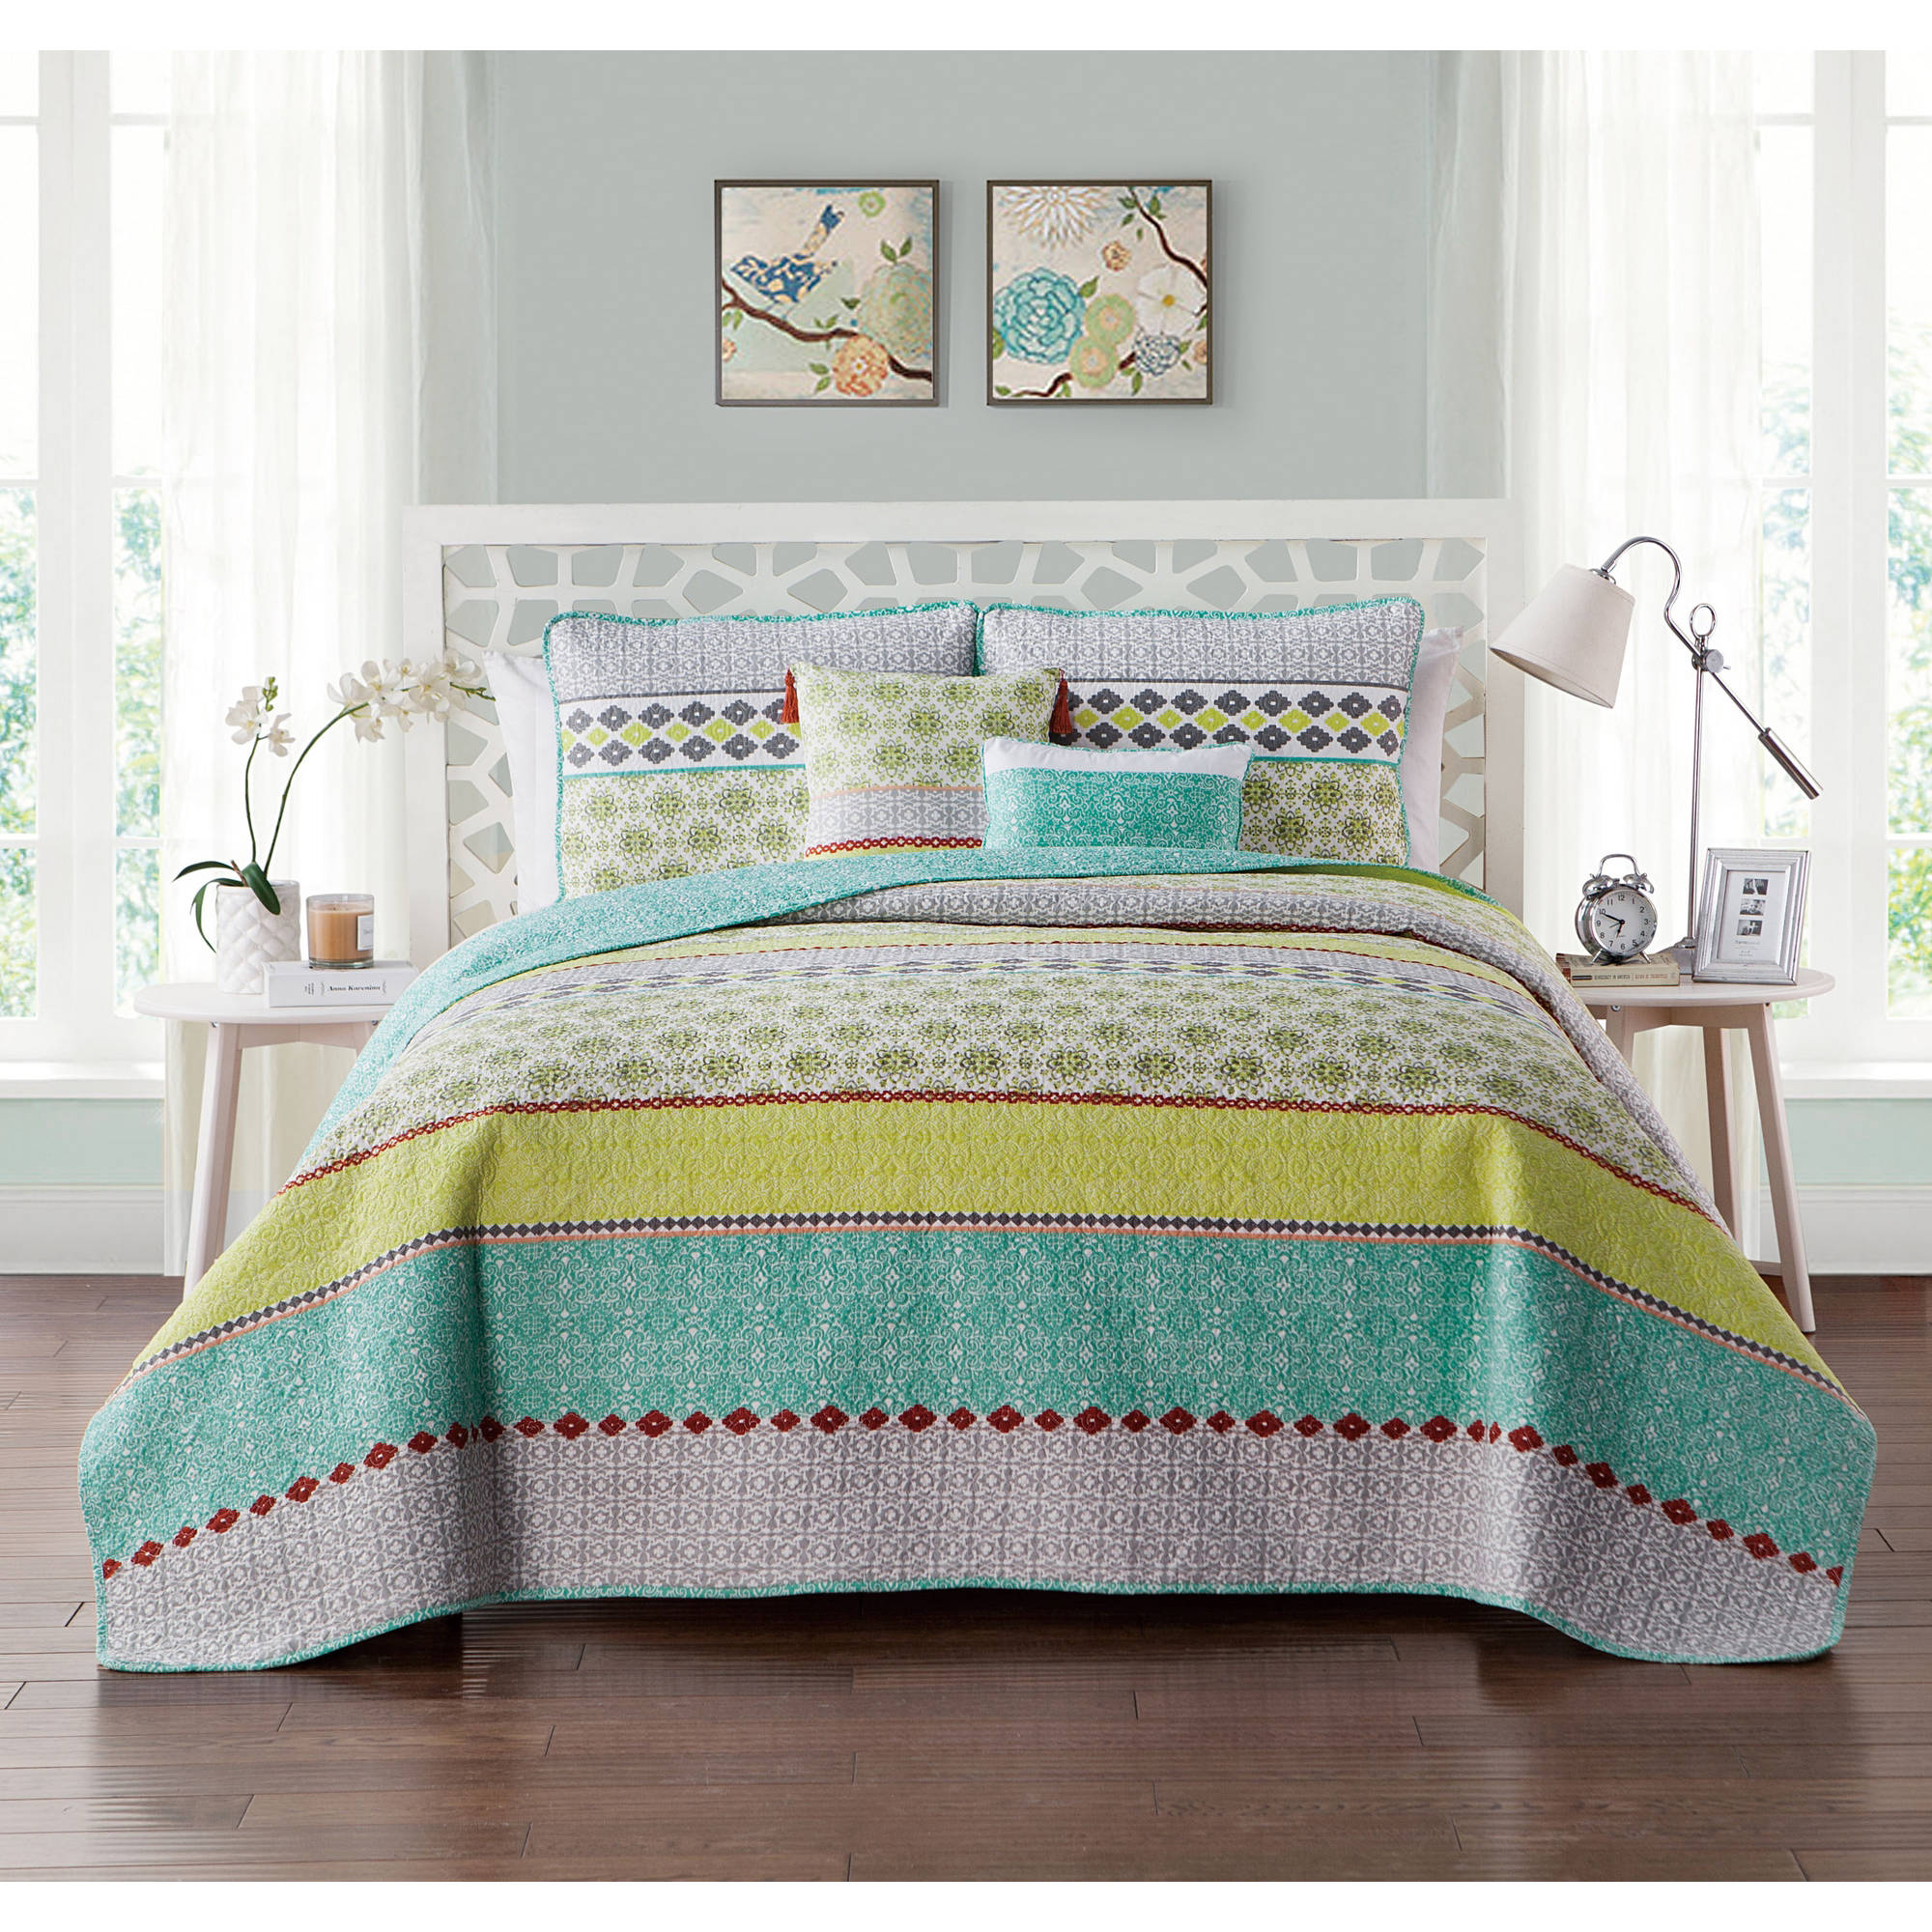 VCNY Home Multi-Color Geometric Printed 4/5 Piece Dharma Embellished Reversible Bedding Quilt Set, Decorative Pillows and Shams Included